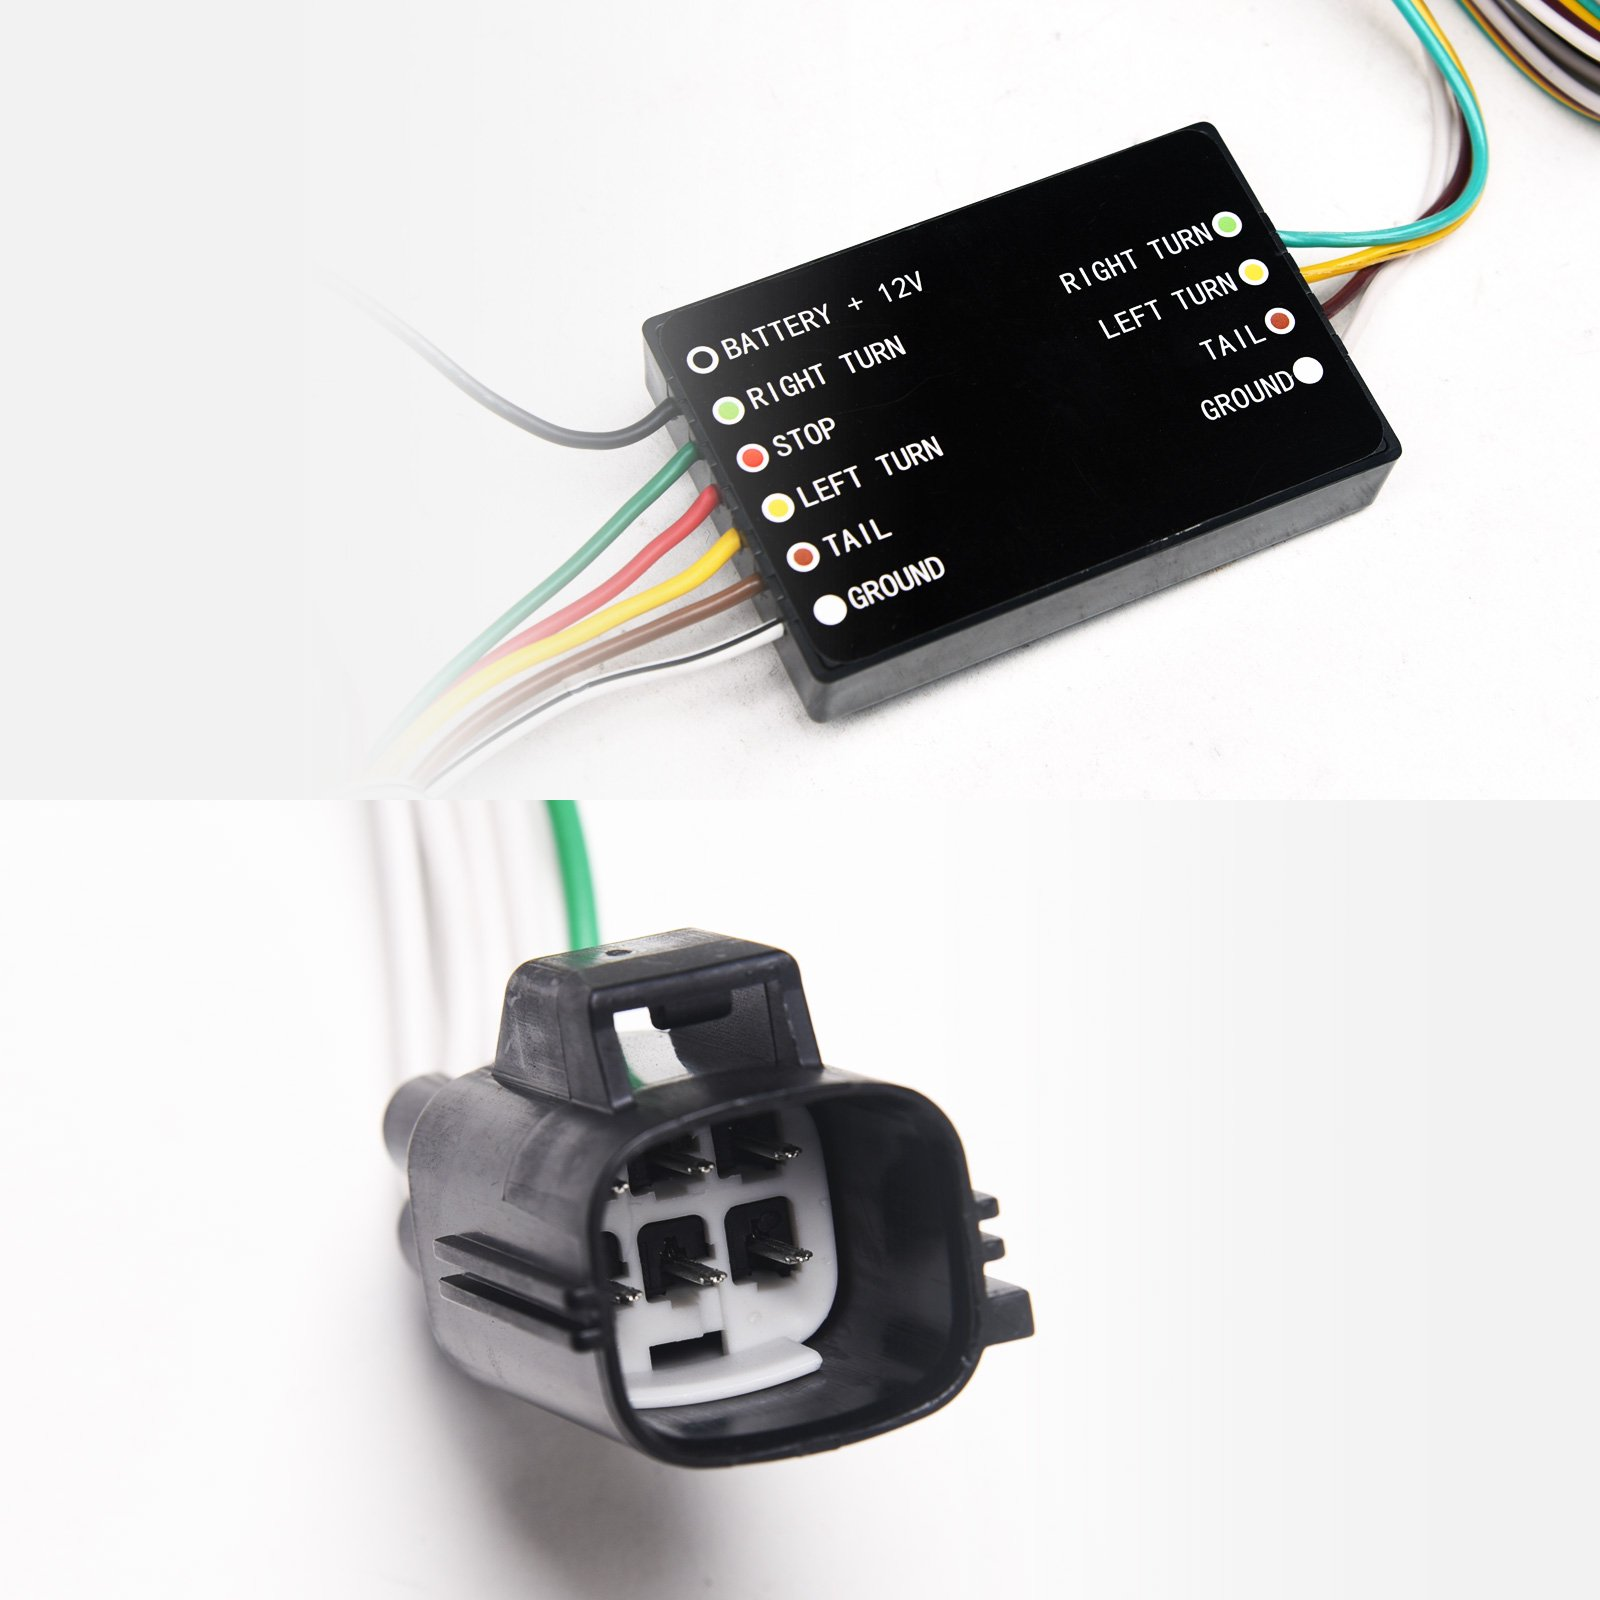 2012 Jeep Liberty Trailer Hitch Wiring Harness from i5.walmartimages.com